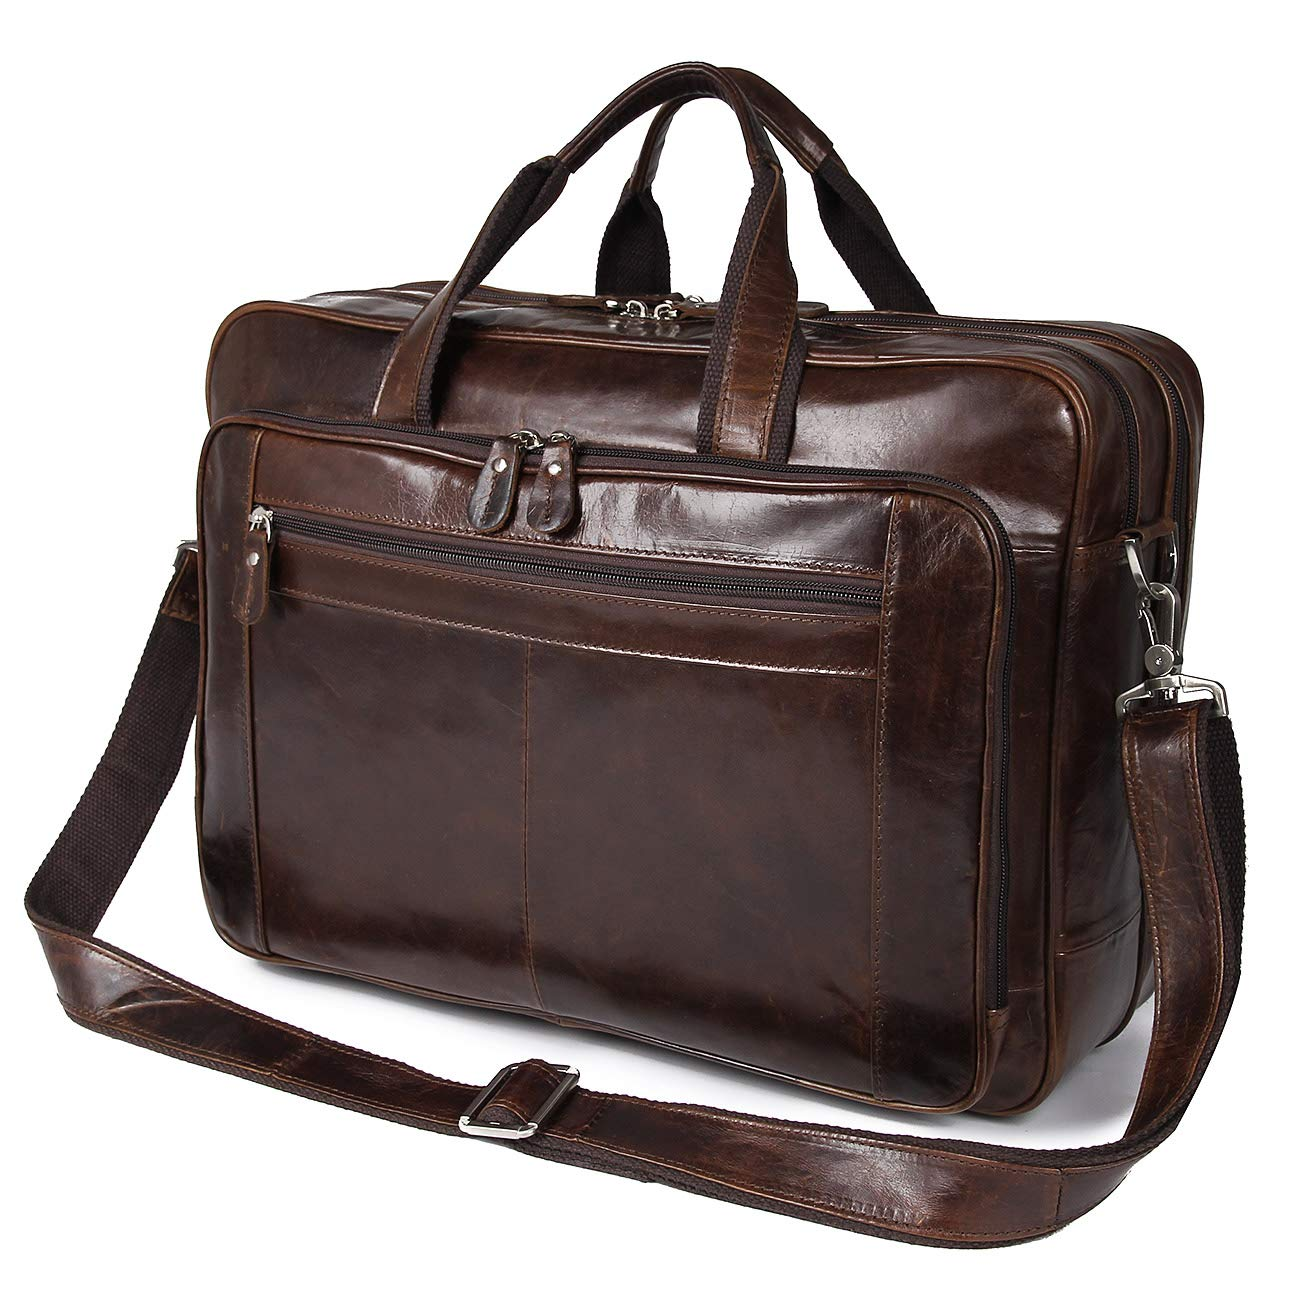 Augus Leather Briefcases for Men, Waterproof Travel Messenger Duffle Bags 17 Inch Laptop Bag (cofee-1) by Augus (Image #2)